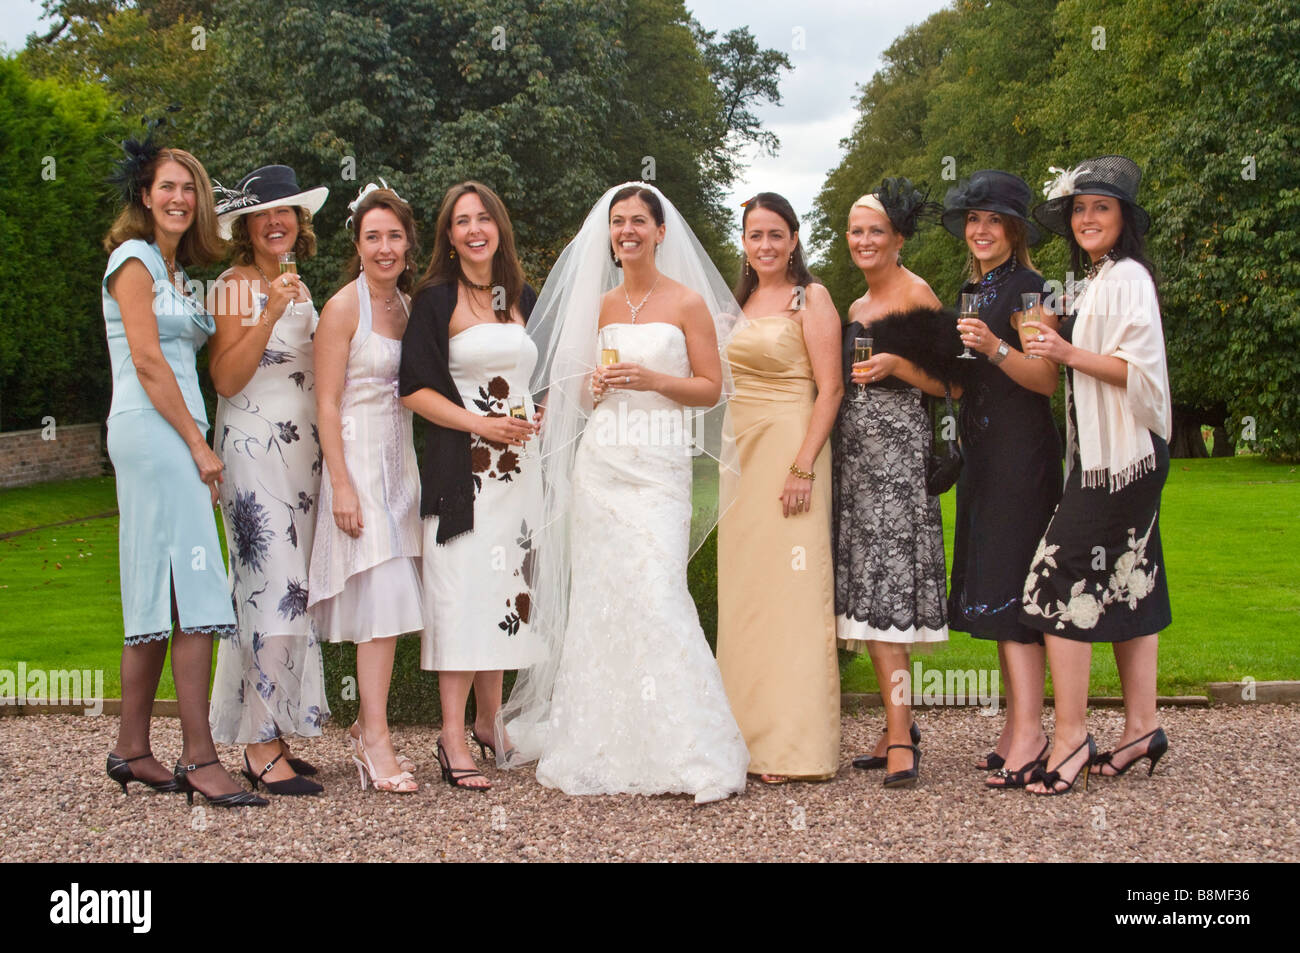 Horizontal informal group portrait of a traditional bride with all her female friends and family at a civil wedding - Stock Image